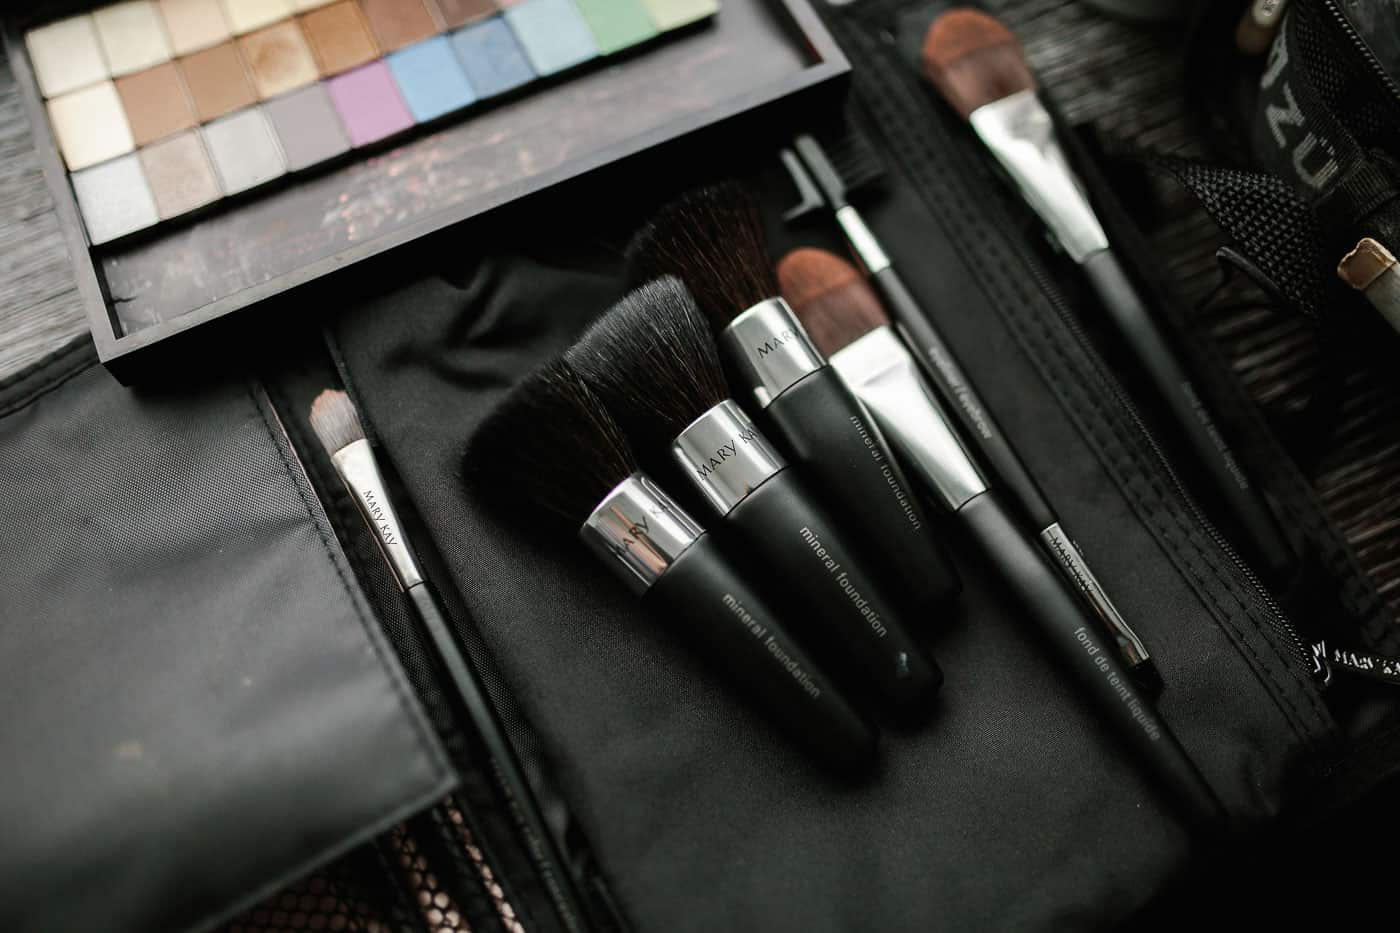 Makeup, My Mary Kay Makeup Favorites For A Night Time Look | My Style Vita @mystylevita